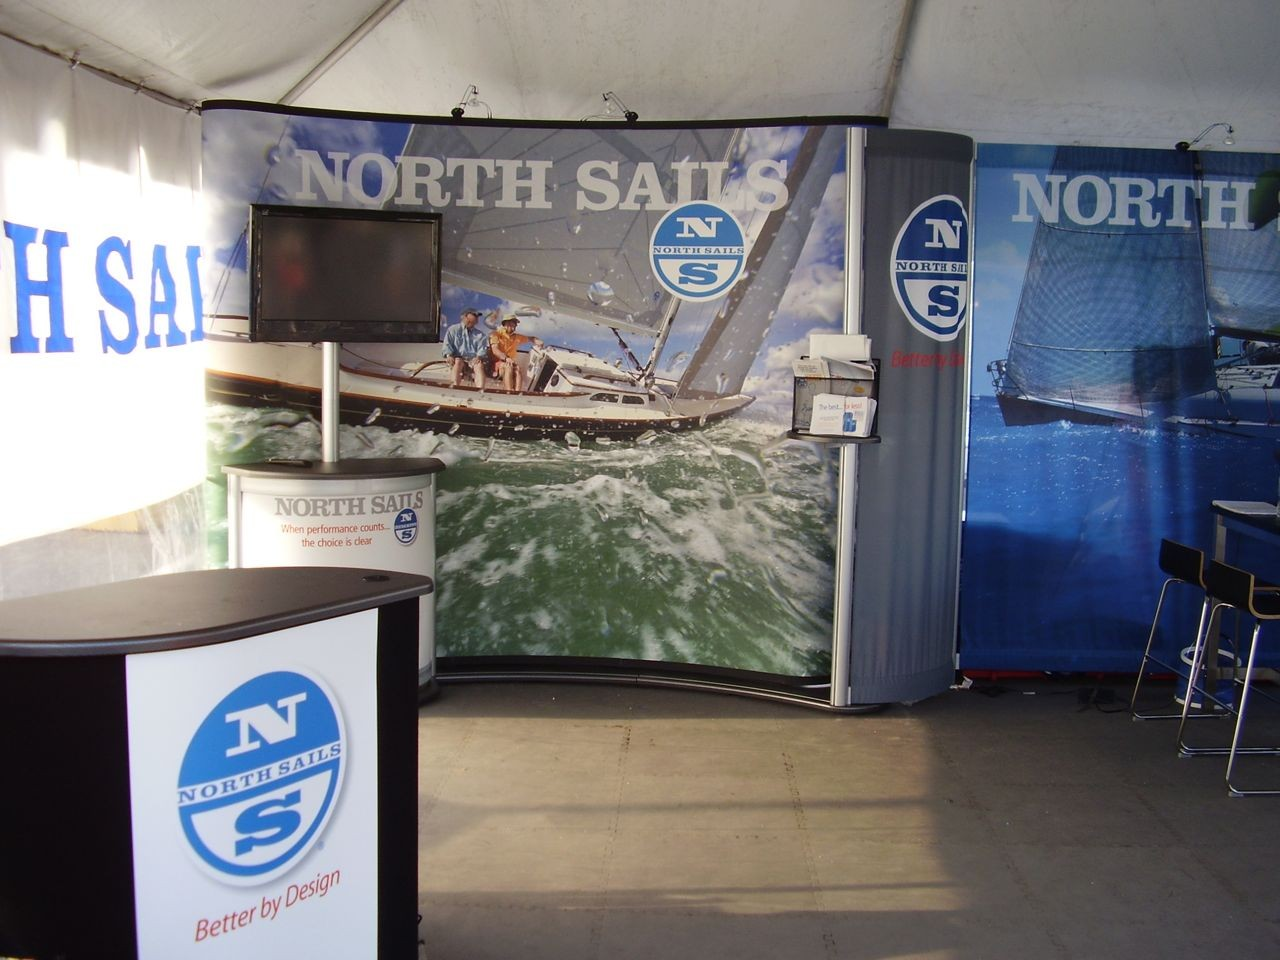 See how Nomadic Display can take your event to the next level!